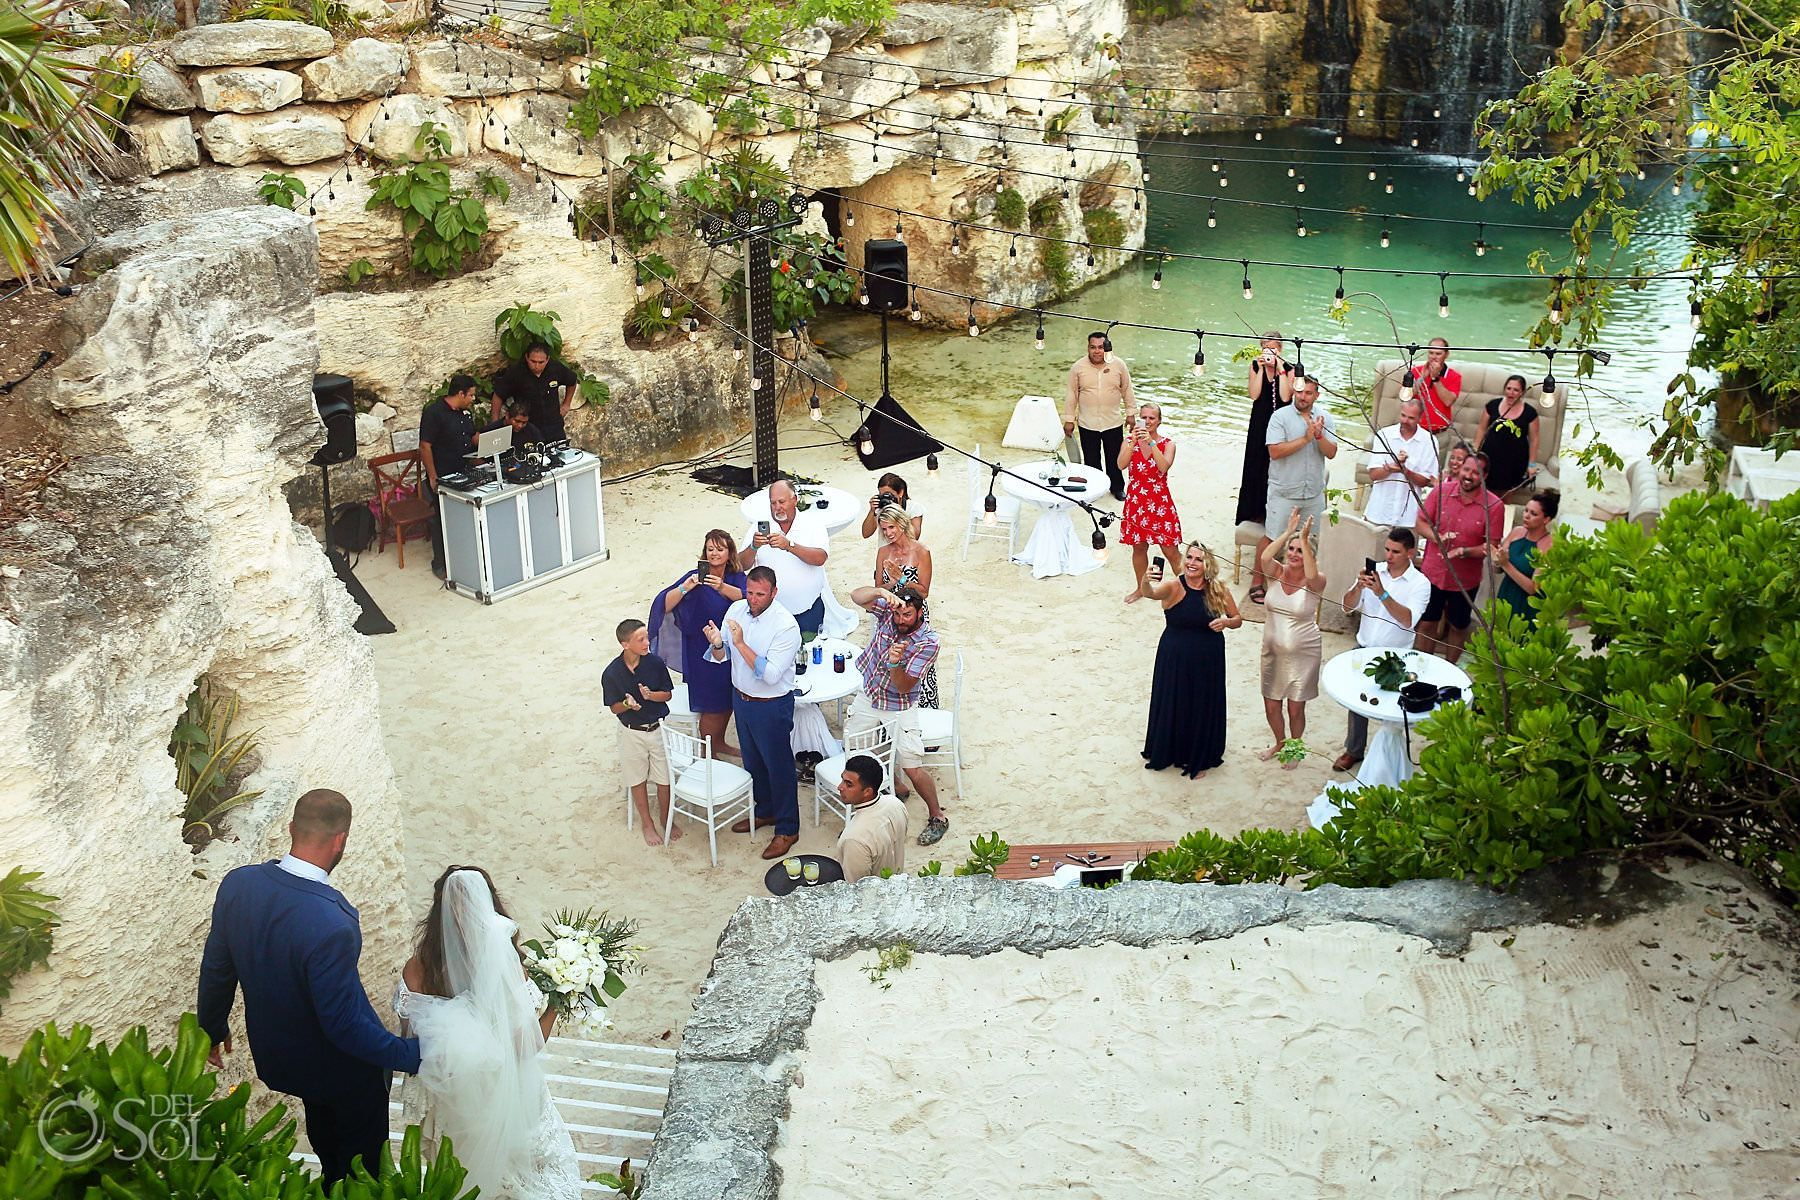 Hotel Xcaret Mexico Wedding Chelsea And Joel Del Sol Photography In 2020 Mexico Wedding Mexico Xcaret